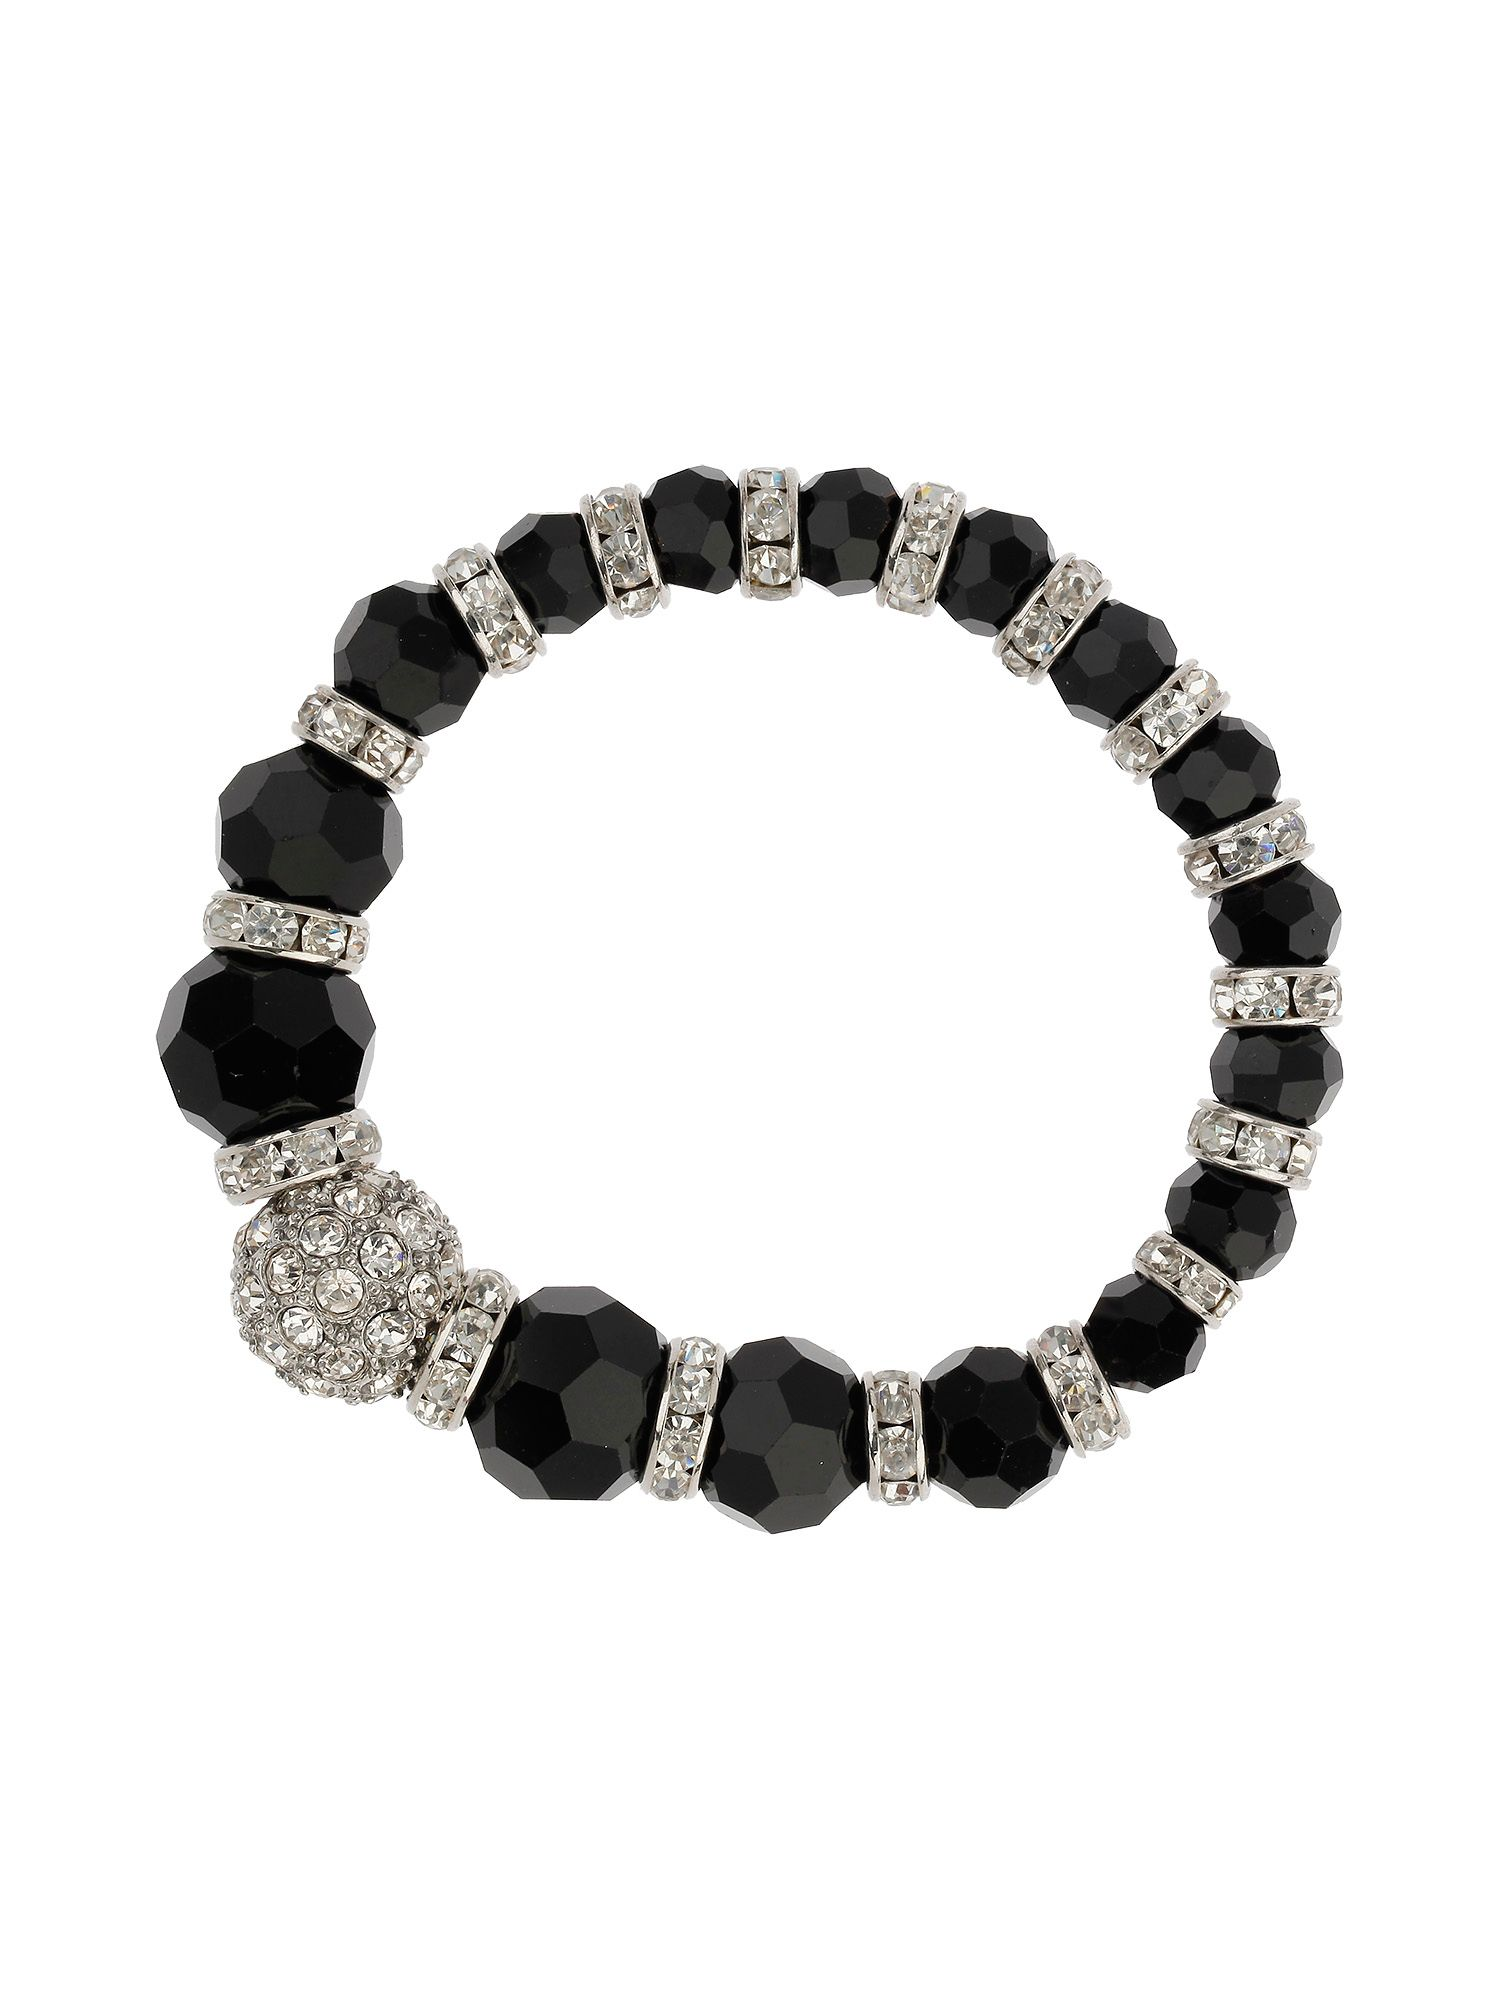 Large crystal ball bracelet